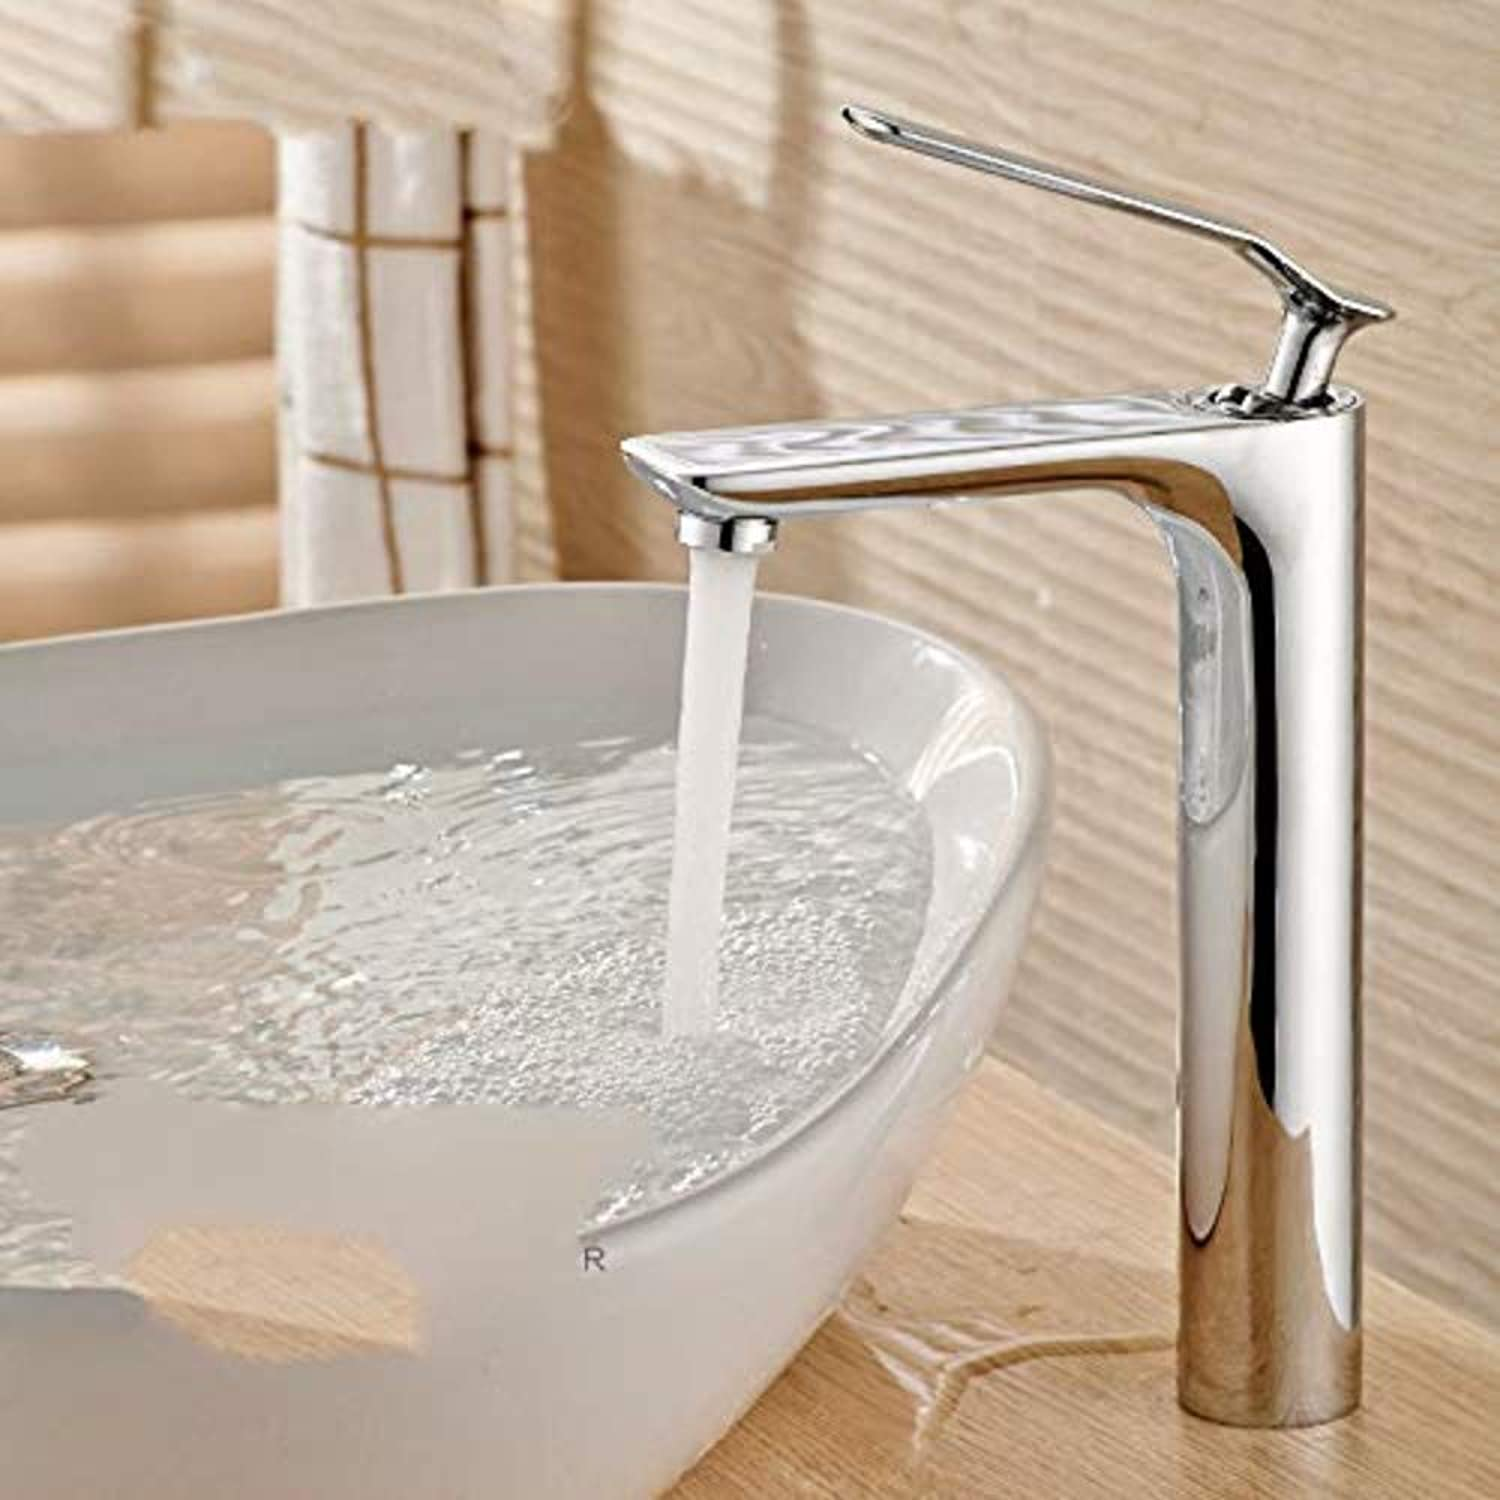 Chrome-Plated Brass Faucet Basin Bathroom Copper Faucet Single Hole Basin Faucet Hot and Cold Basin Faucet redating Faucet